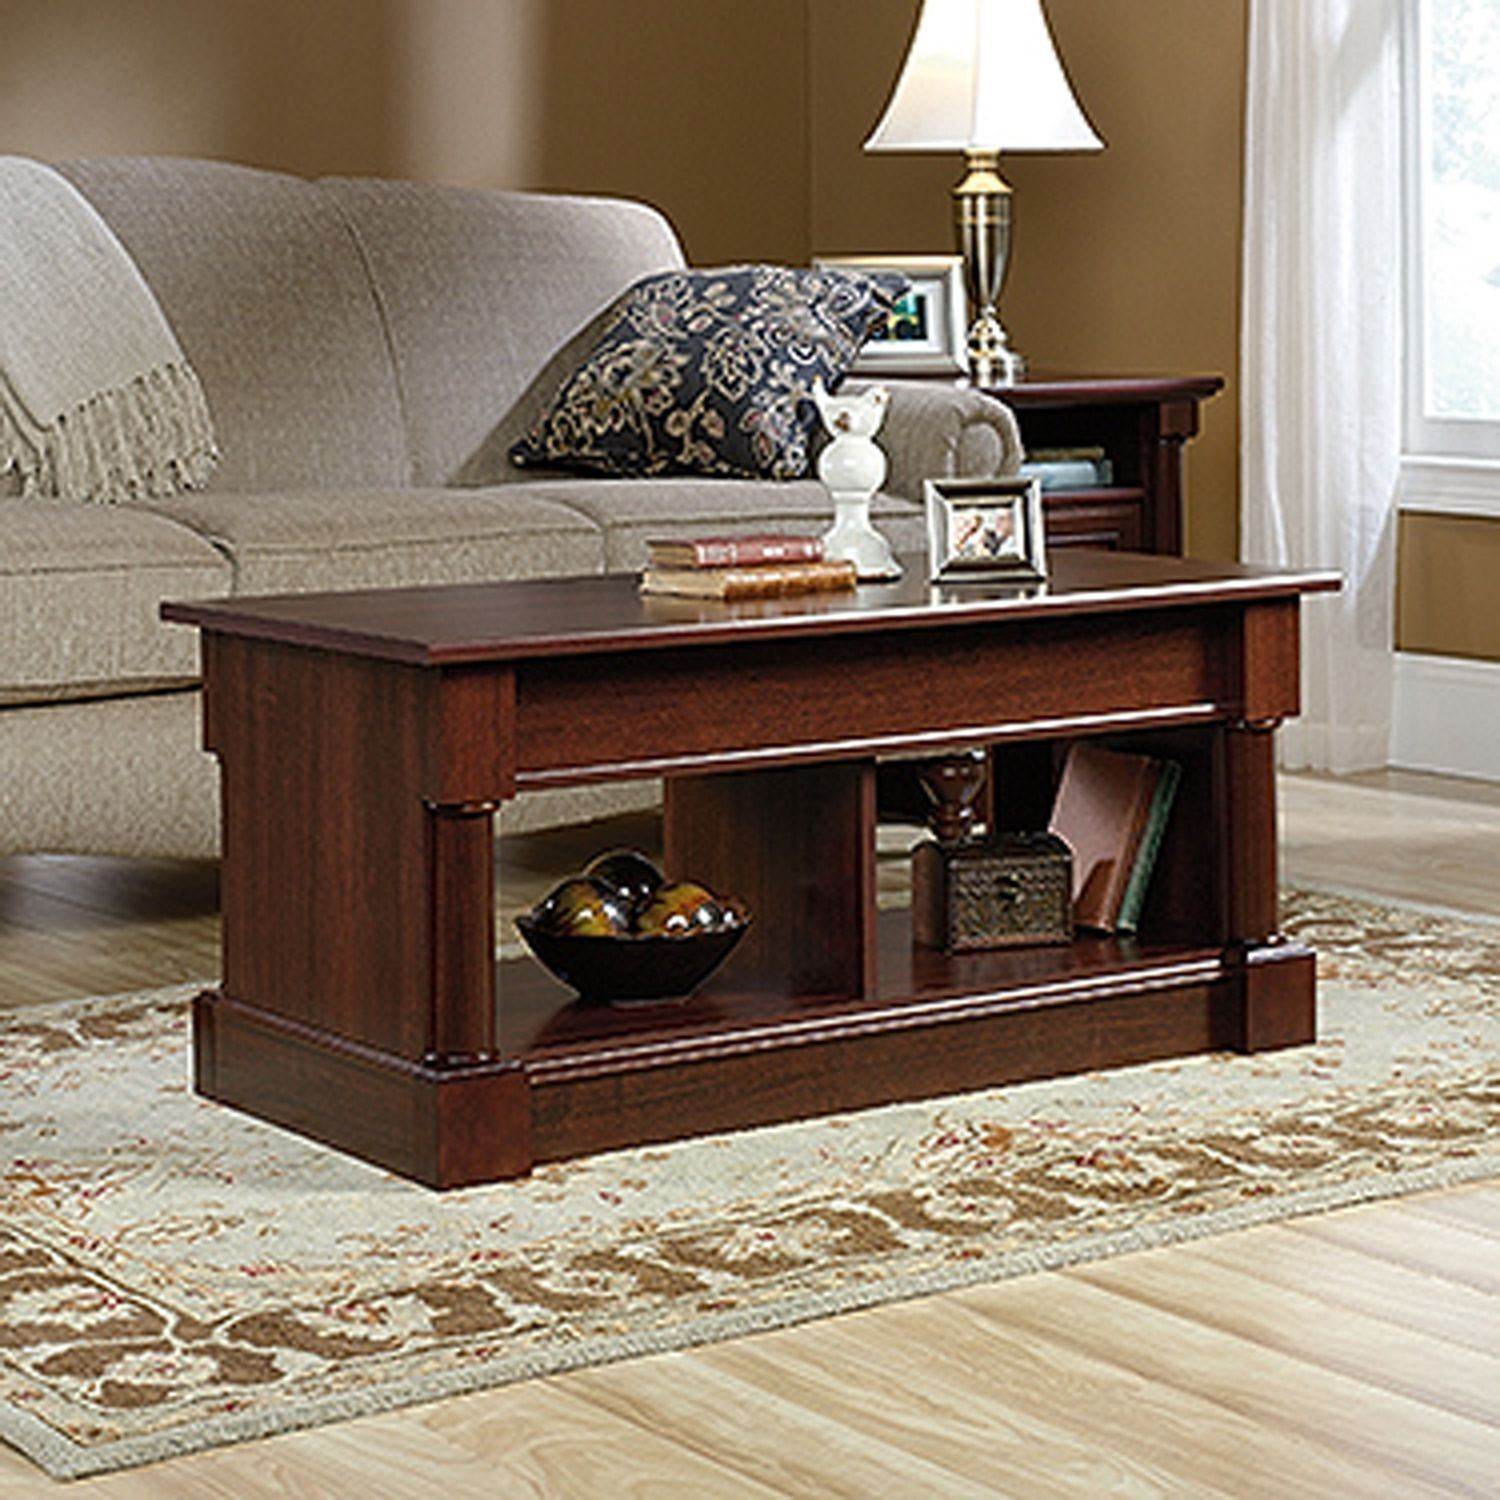 Merveilleux Picture Of Palladia Lift Top Coffee Table Select Cherry * D